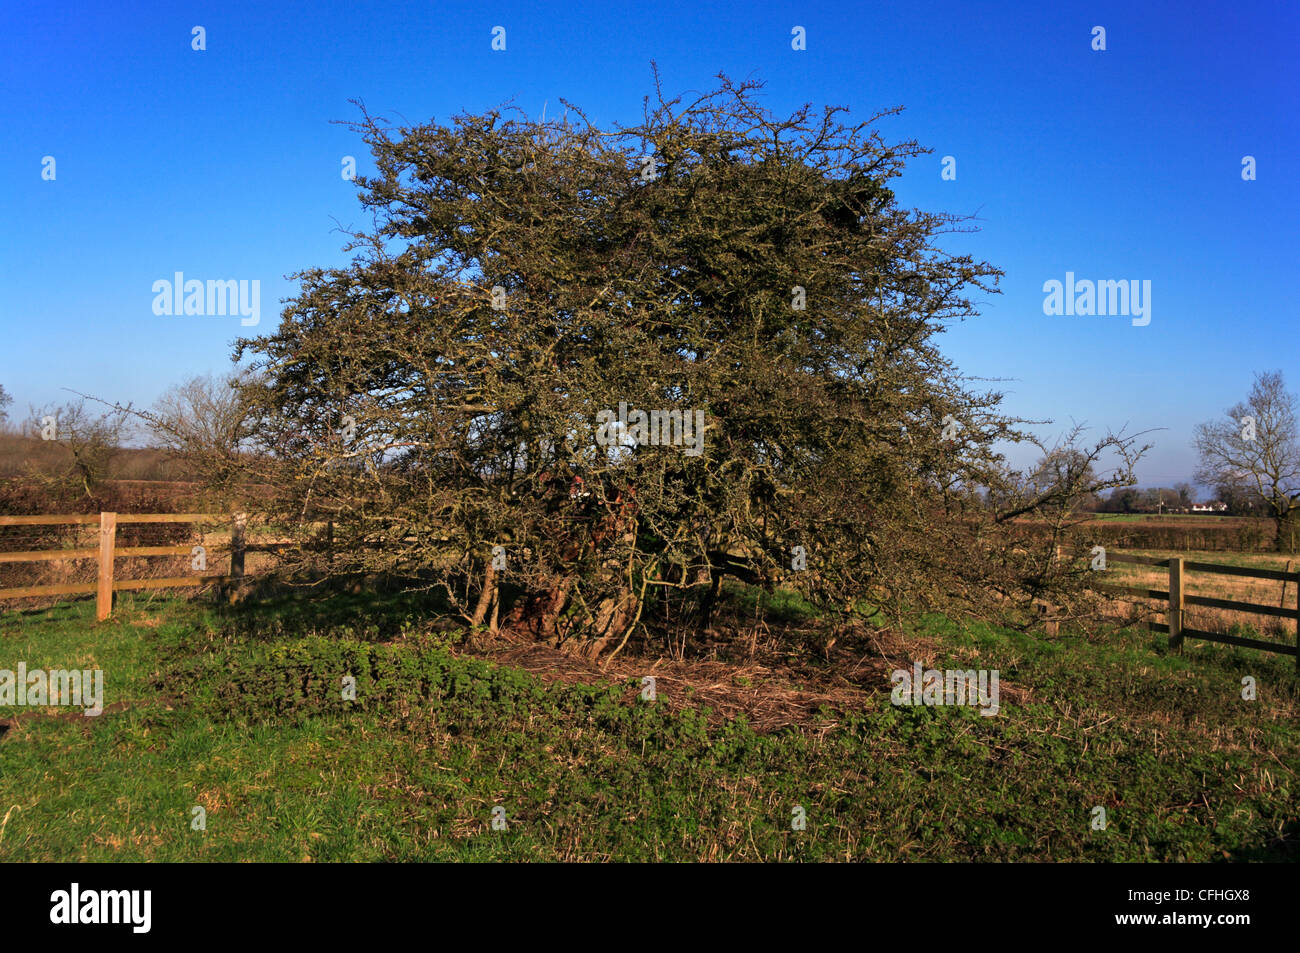 The ancient Hawthorn tree known as the Hethel Thorn at Hethel, Norfolk, England, United Kingdom. - Stock Image